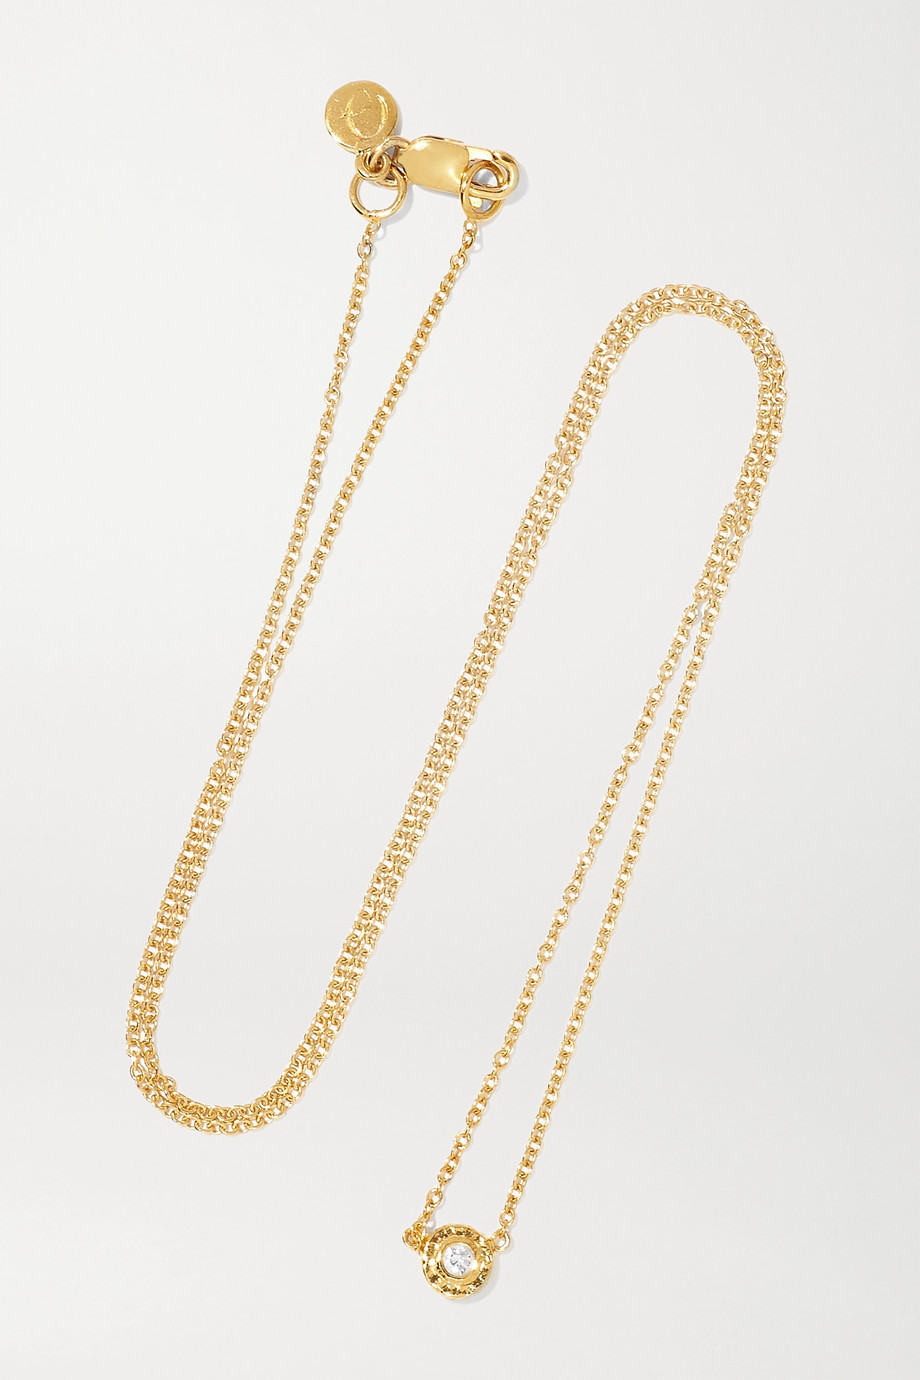 OCTAVIA ELIZABETH Nesting Gem 18-karat gold diamond necklace